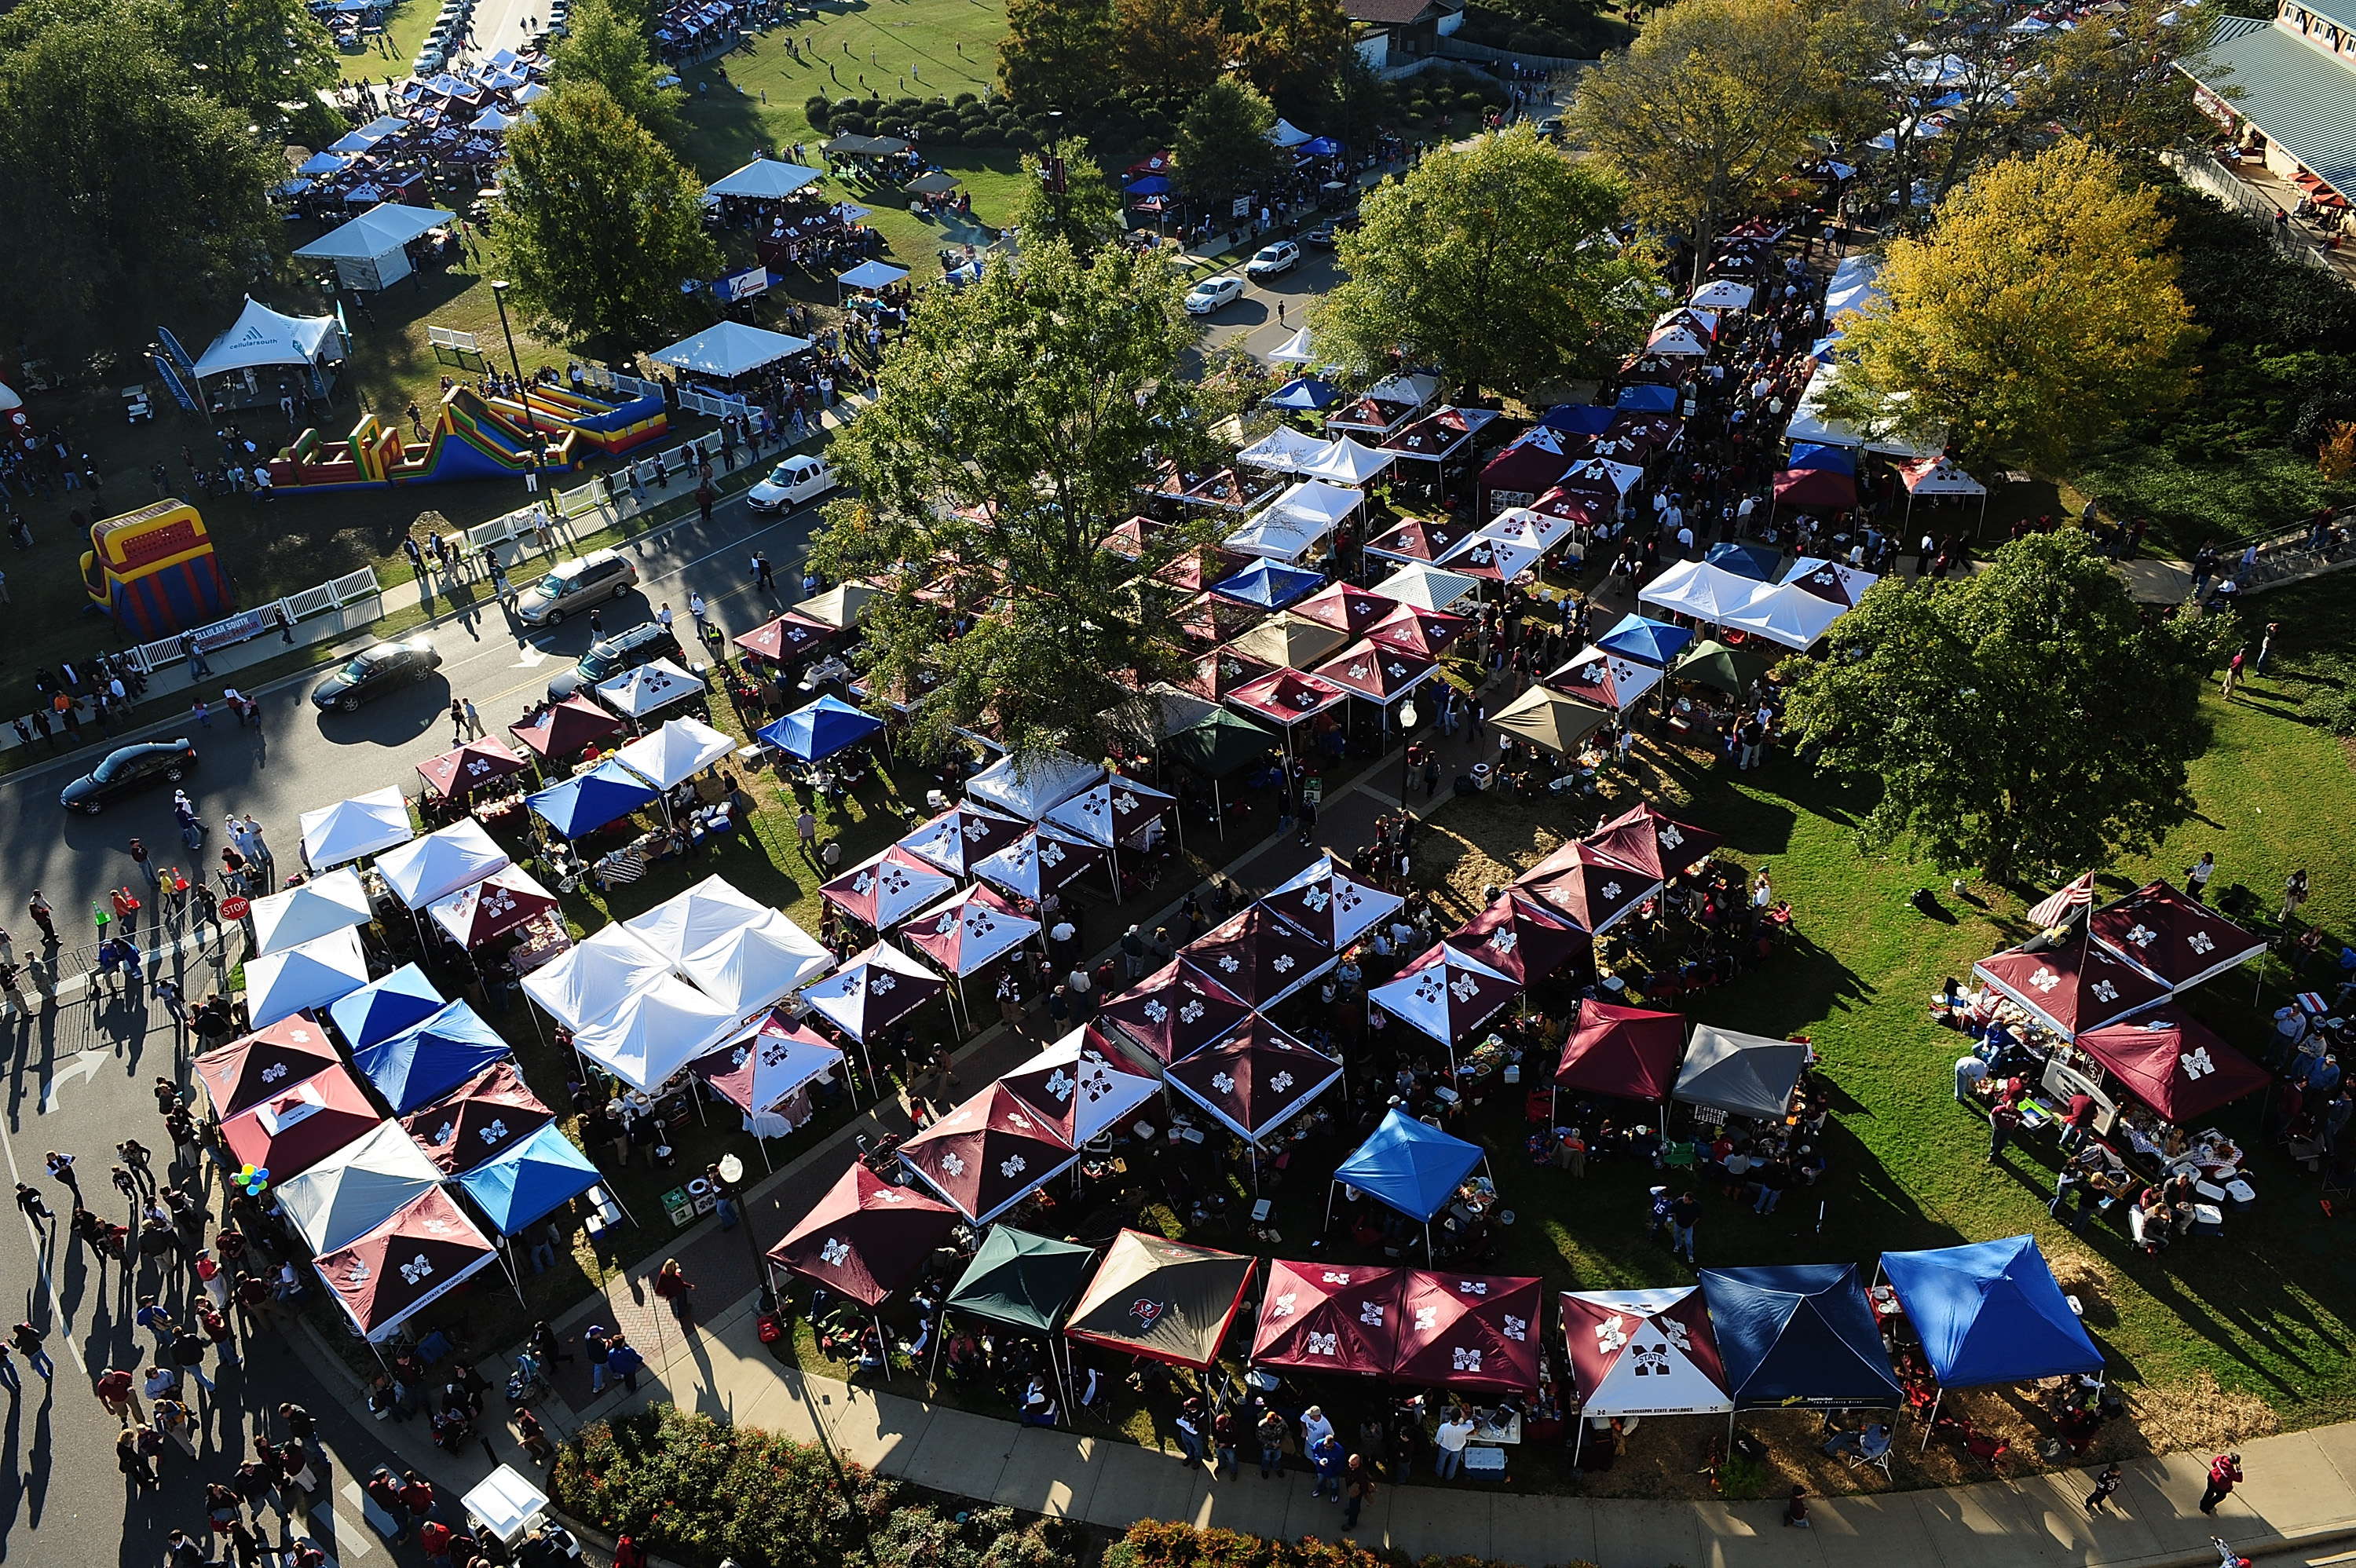 The tailgating scene at Mississippi State.